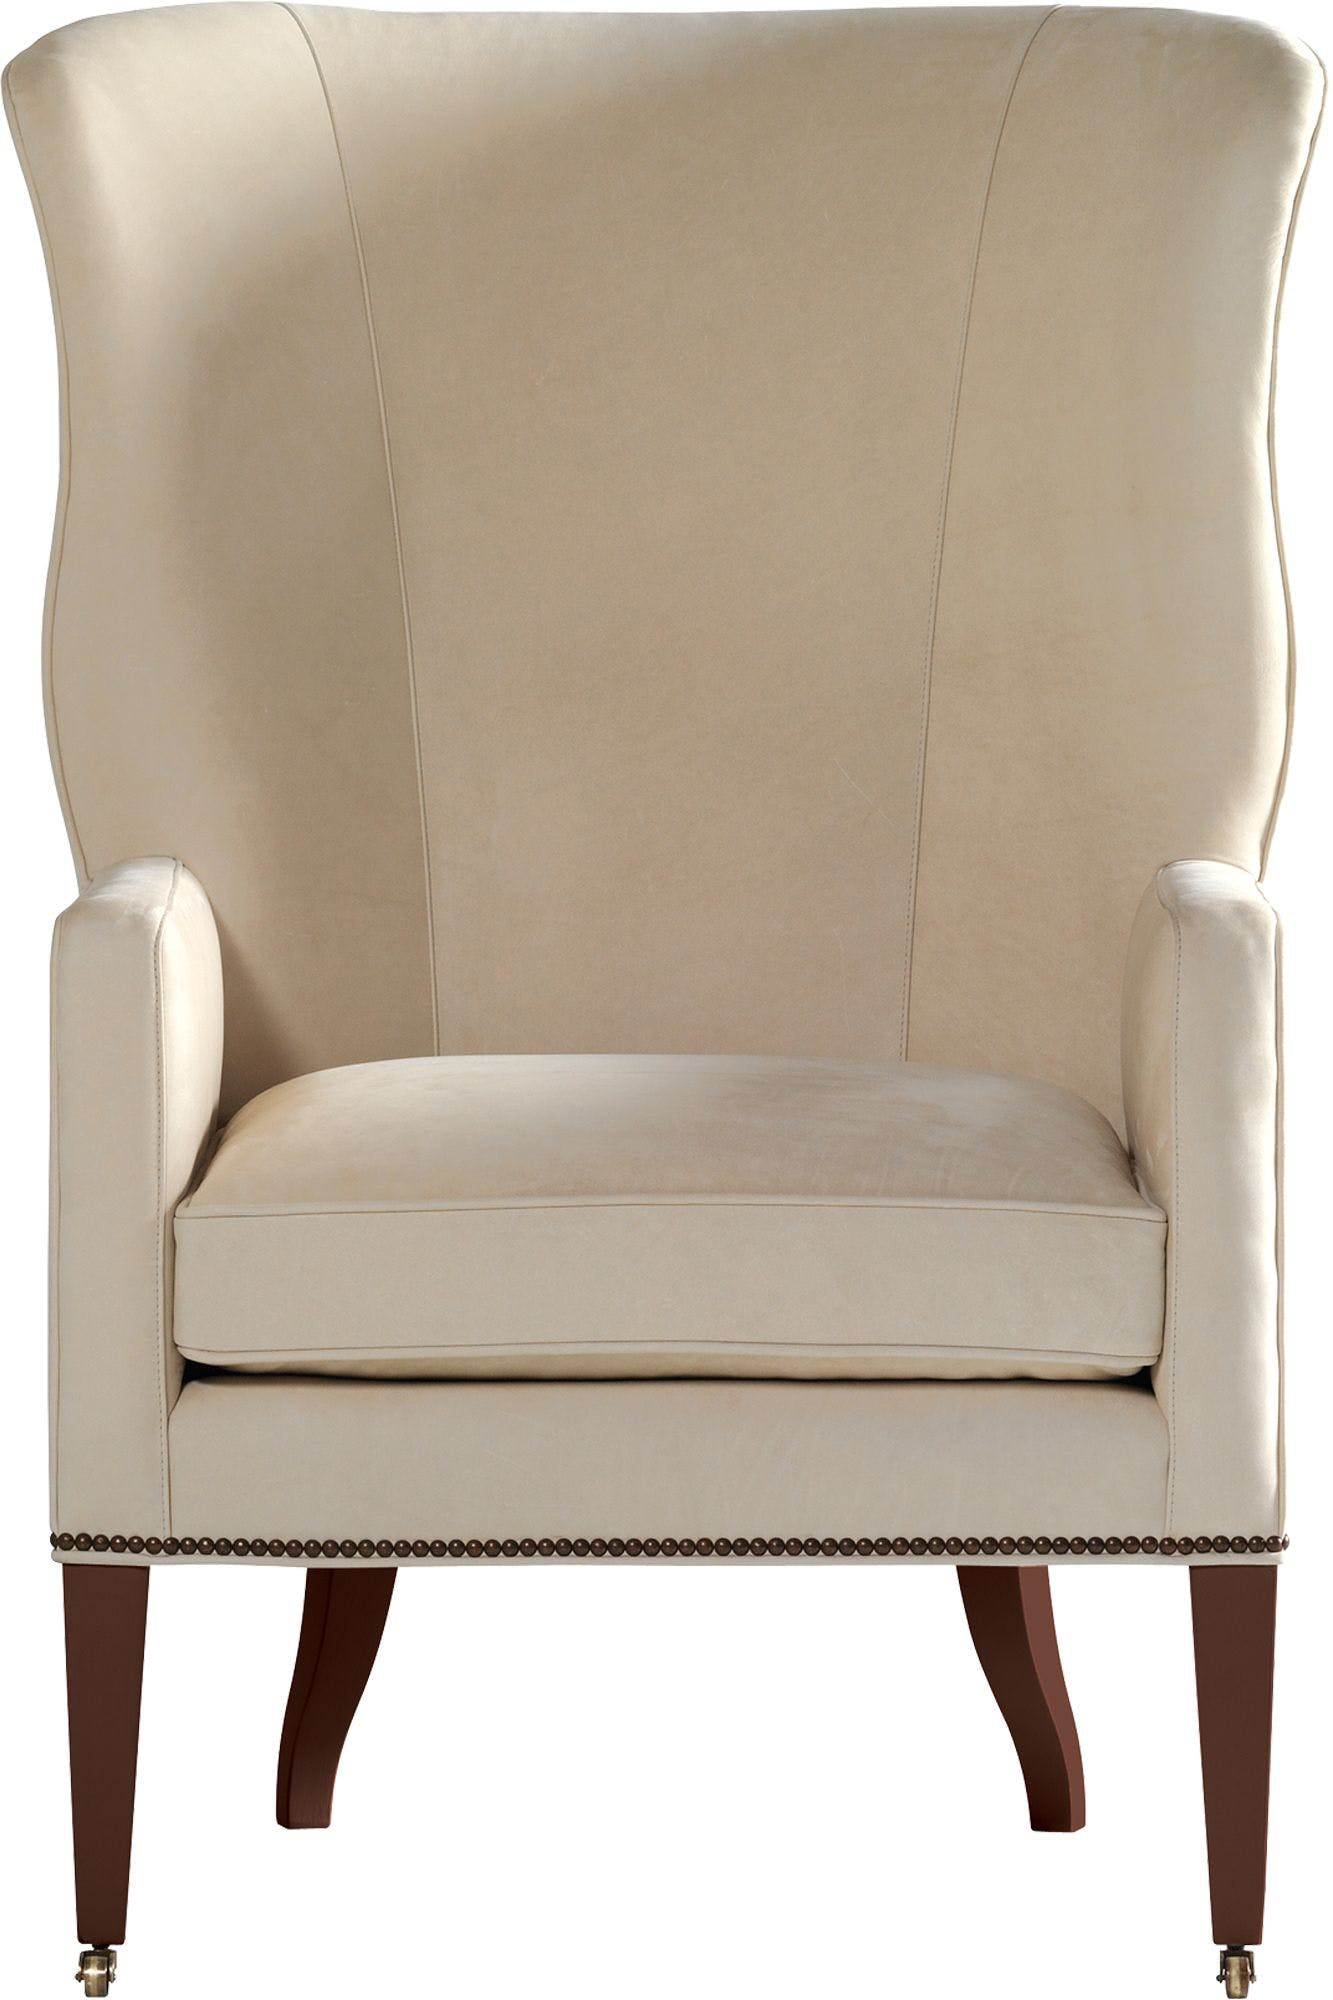 Wing Chair BKR6200